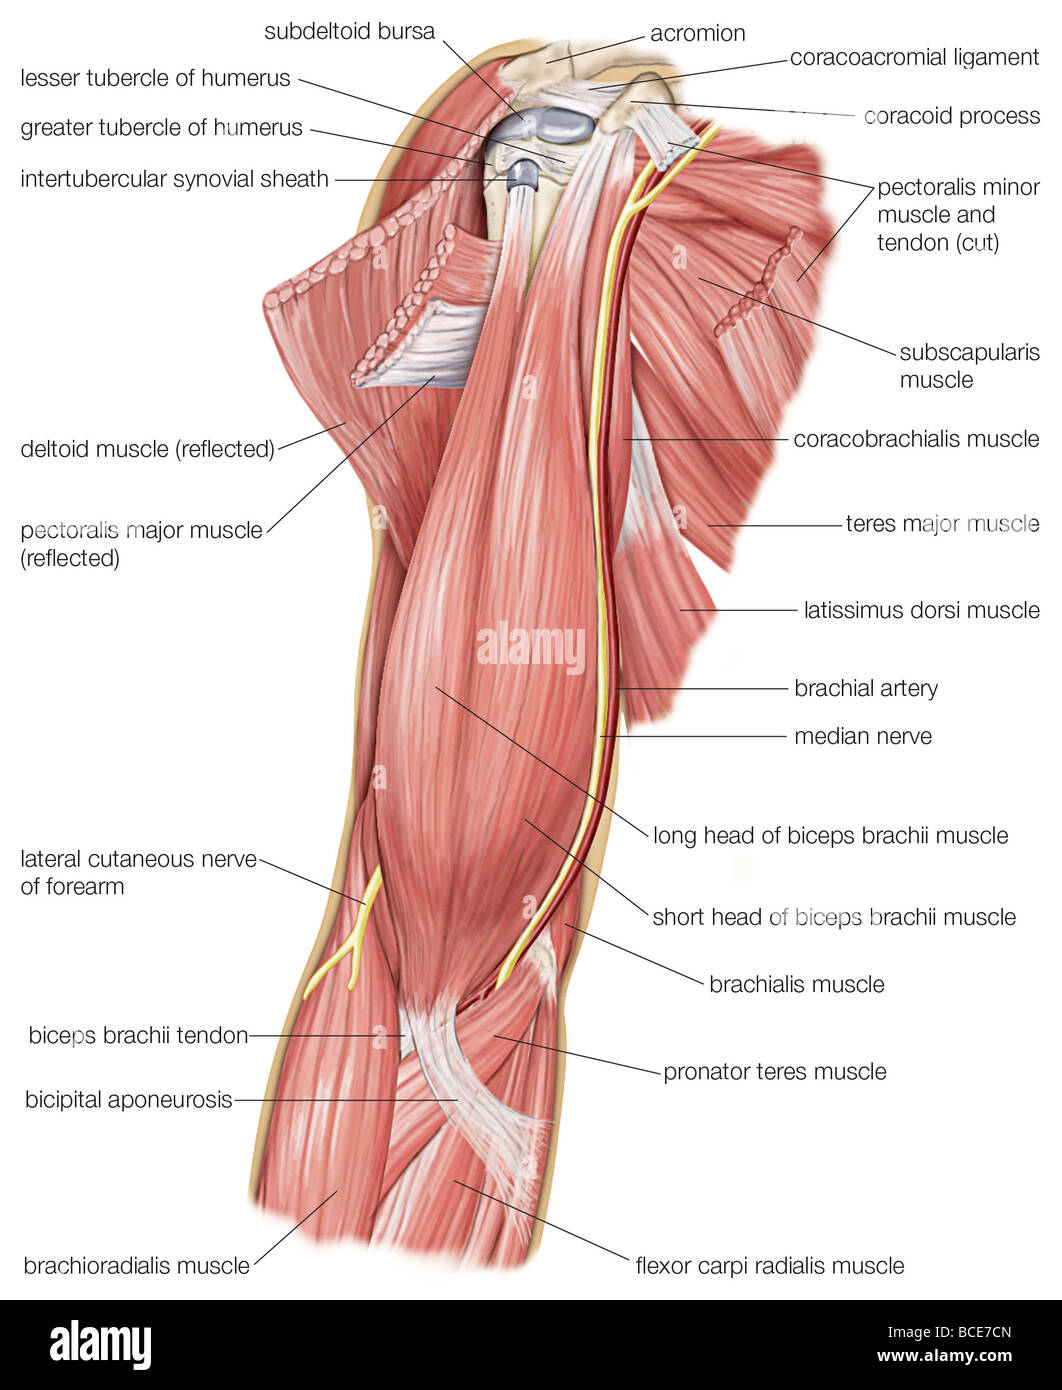 hight resolution of the muscles of the human upper arm as well as the cutaneous nerve and median nerve